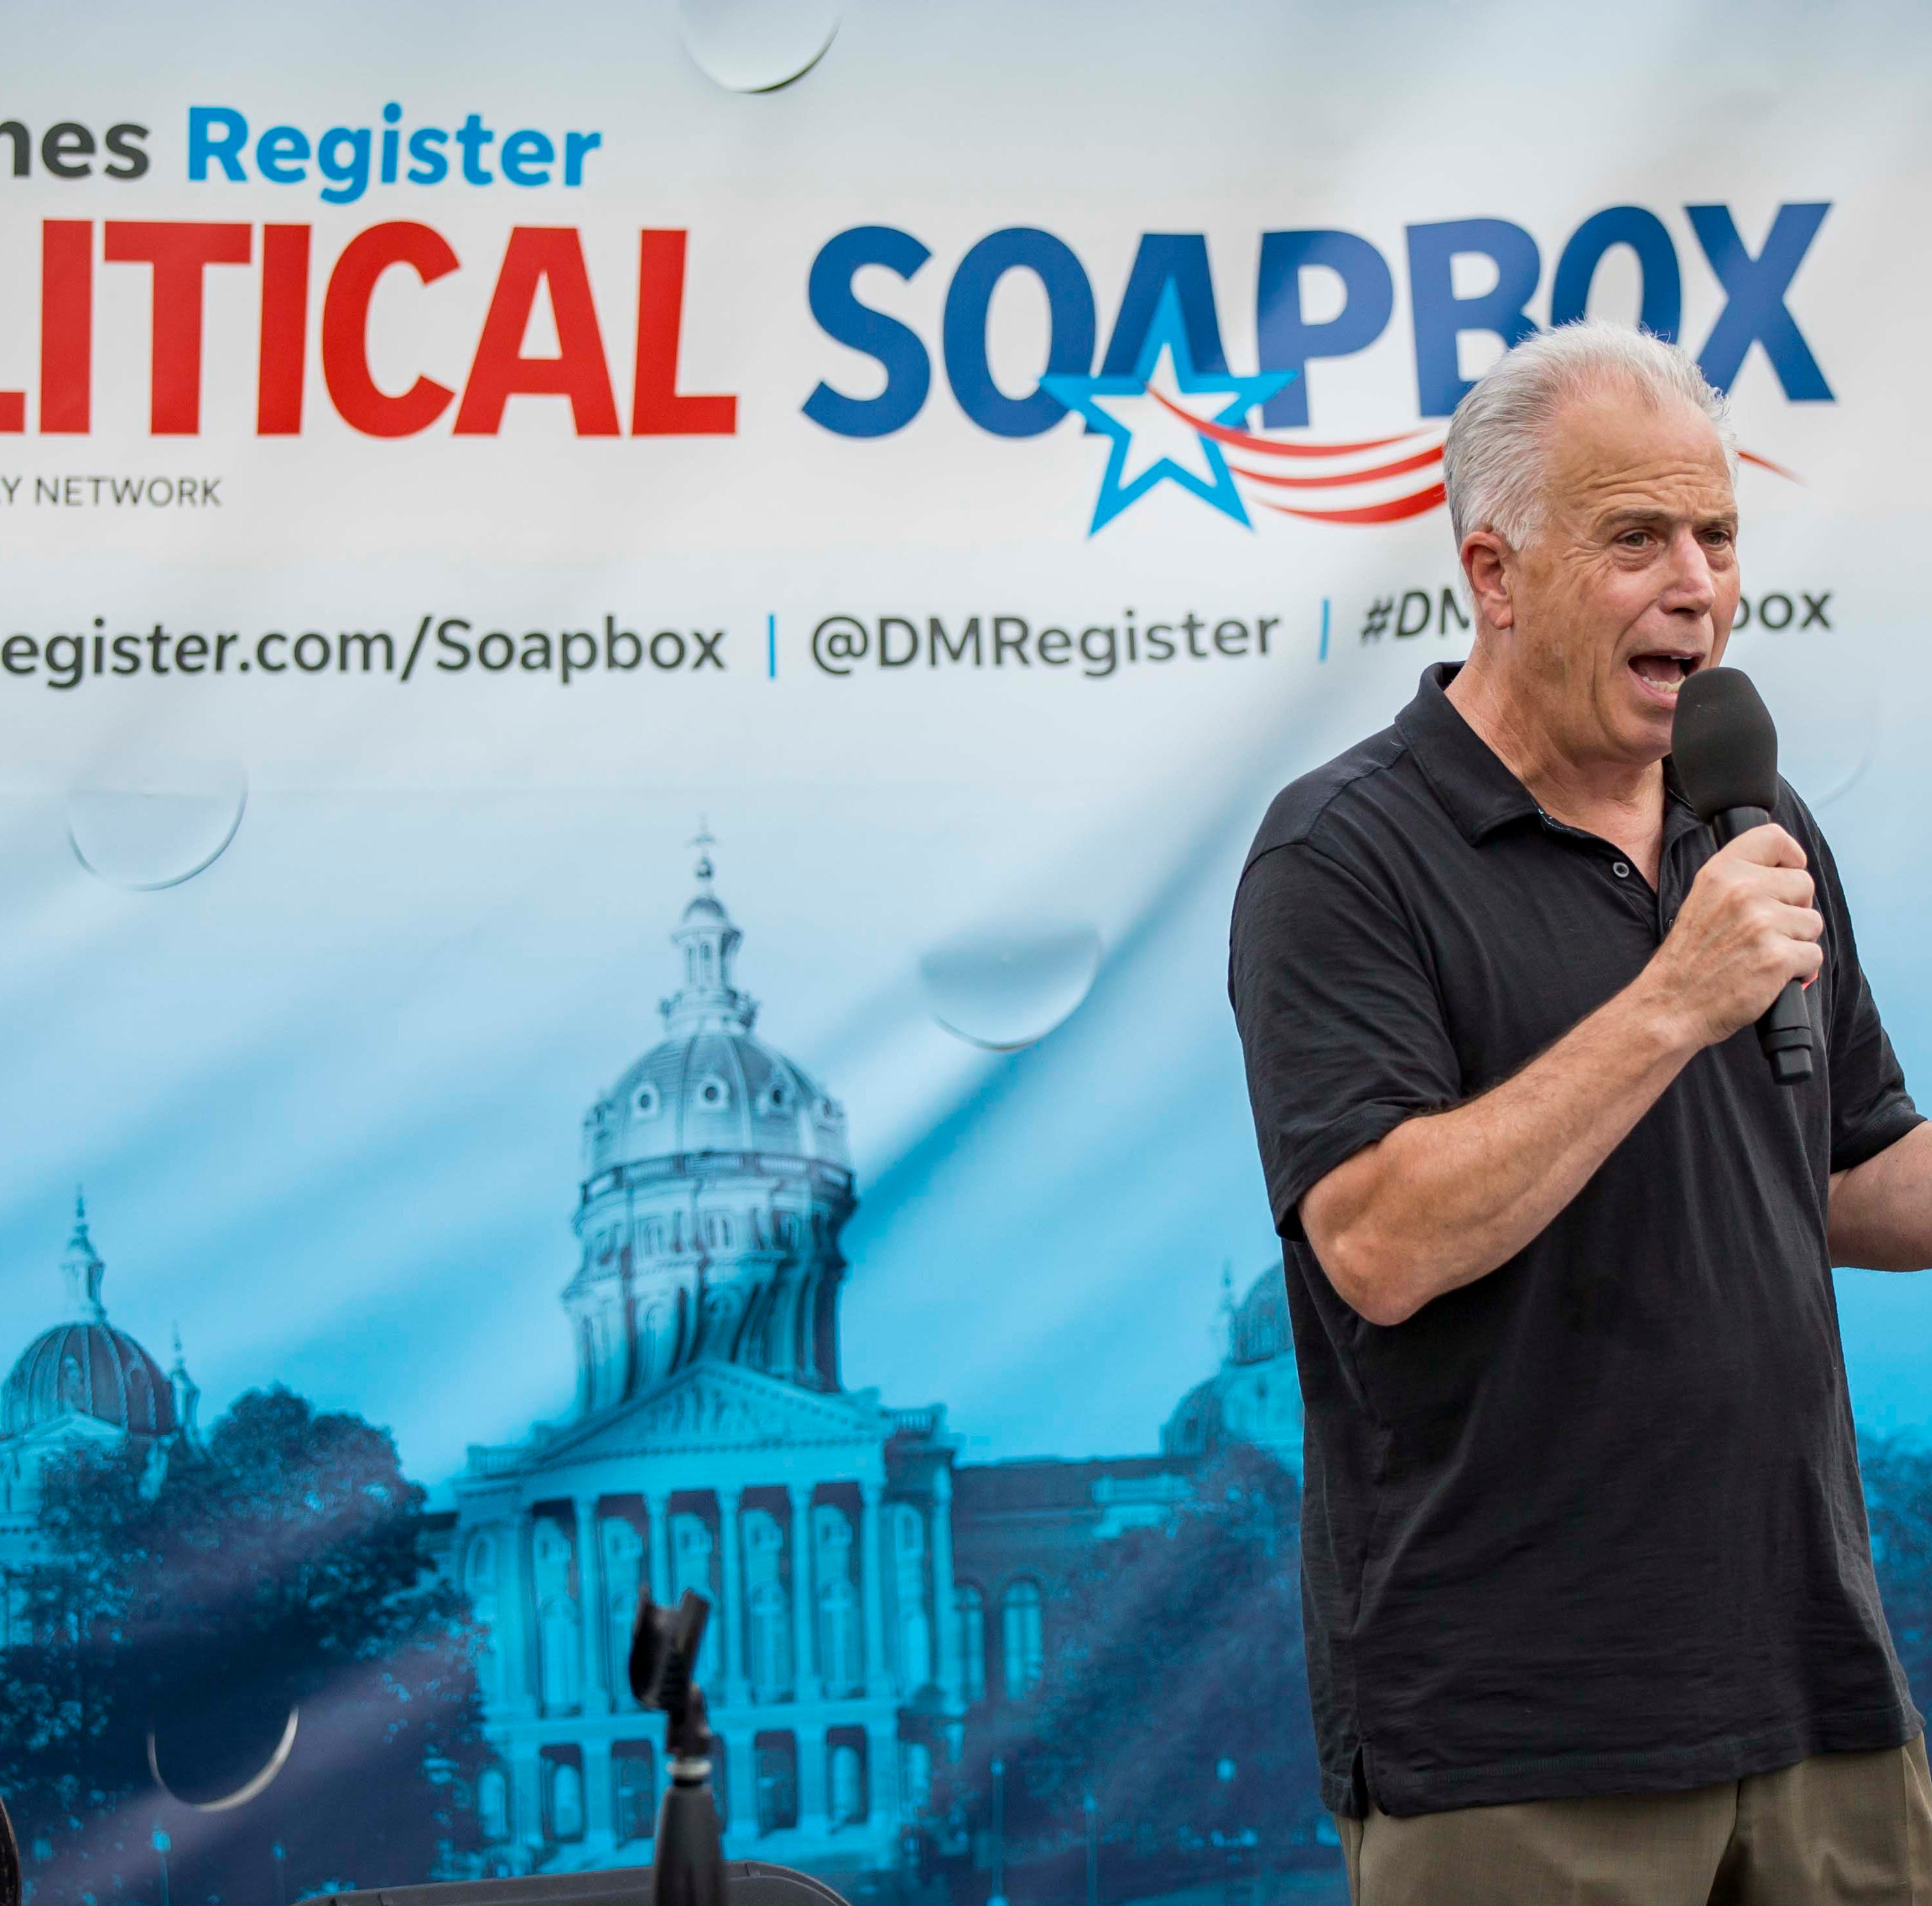 Register Soapbox: Independent in 3rd District says he stands 'shoulder-to-shoulder' with Trump